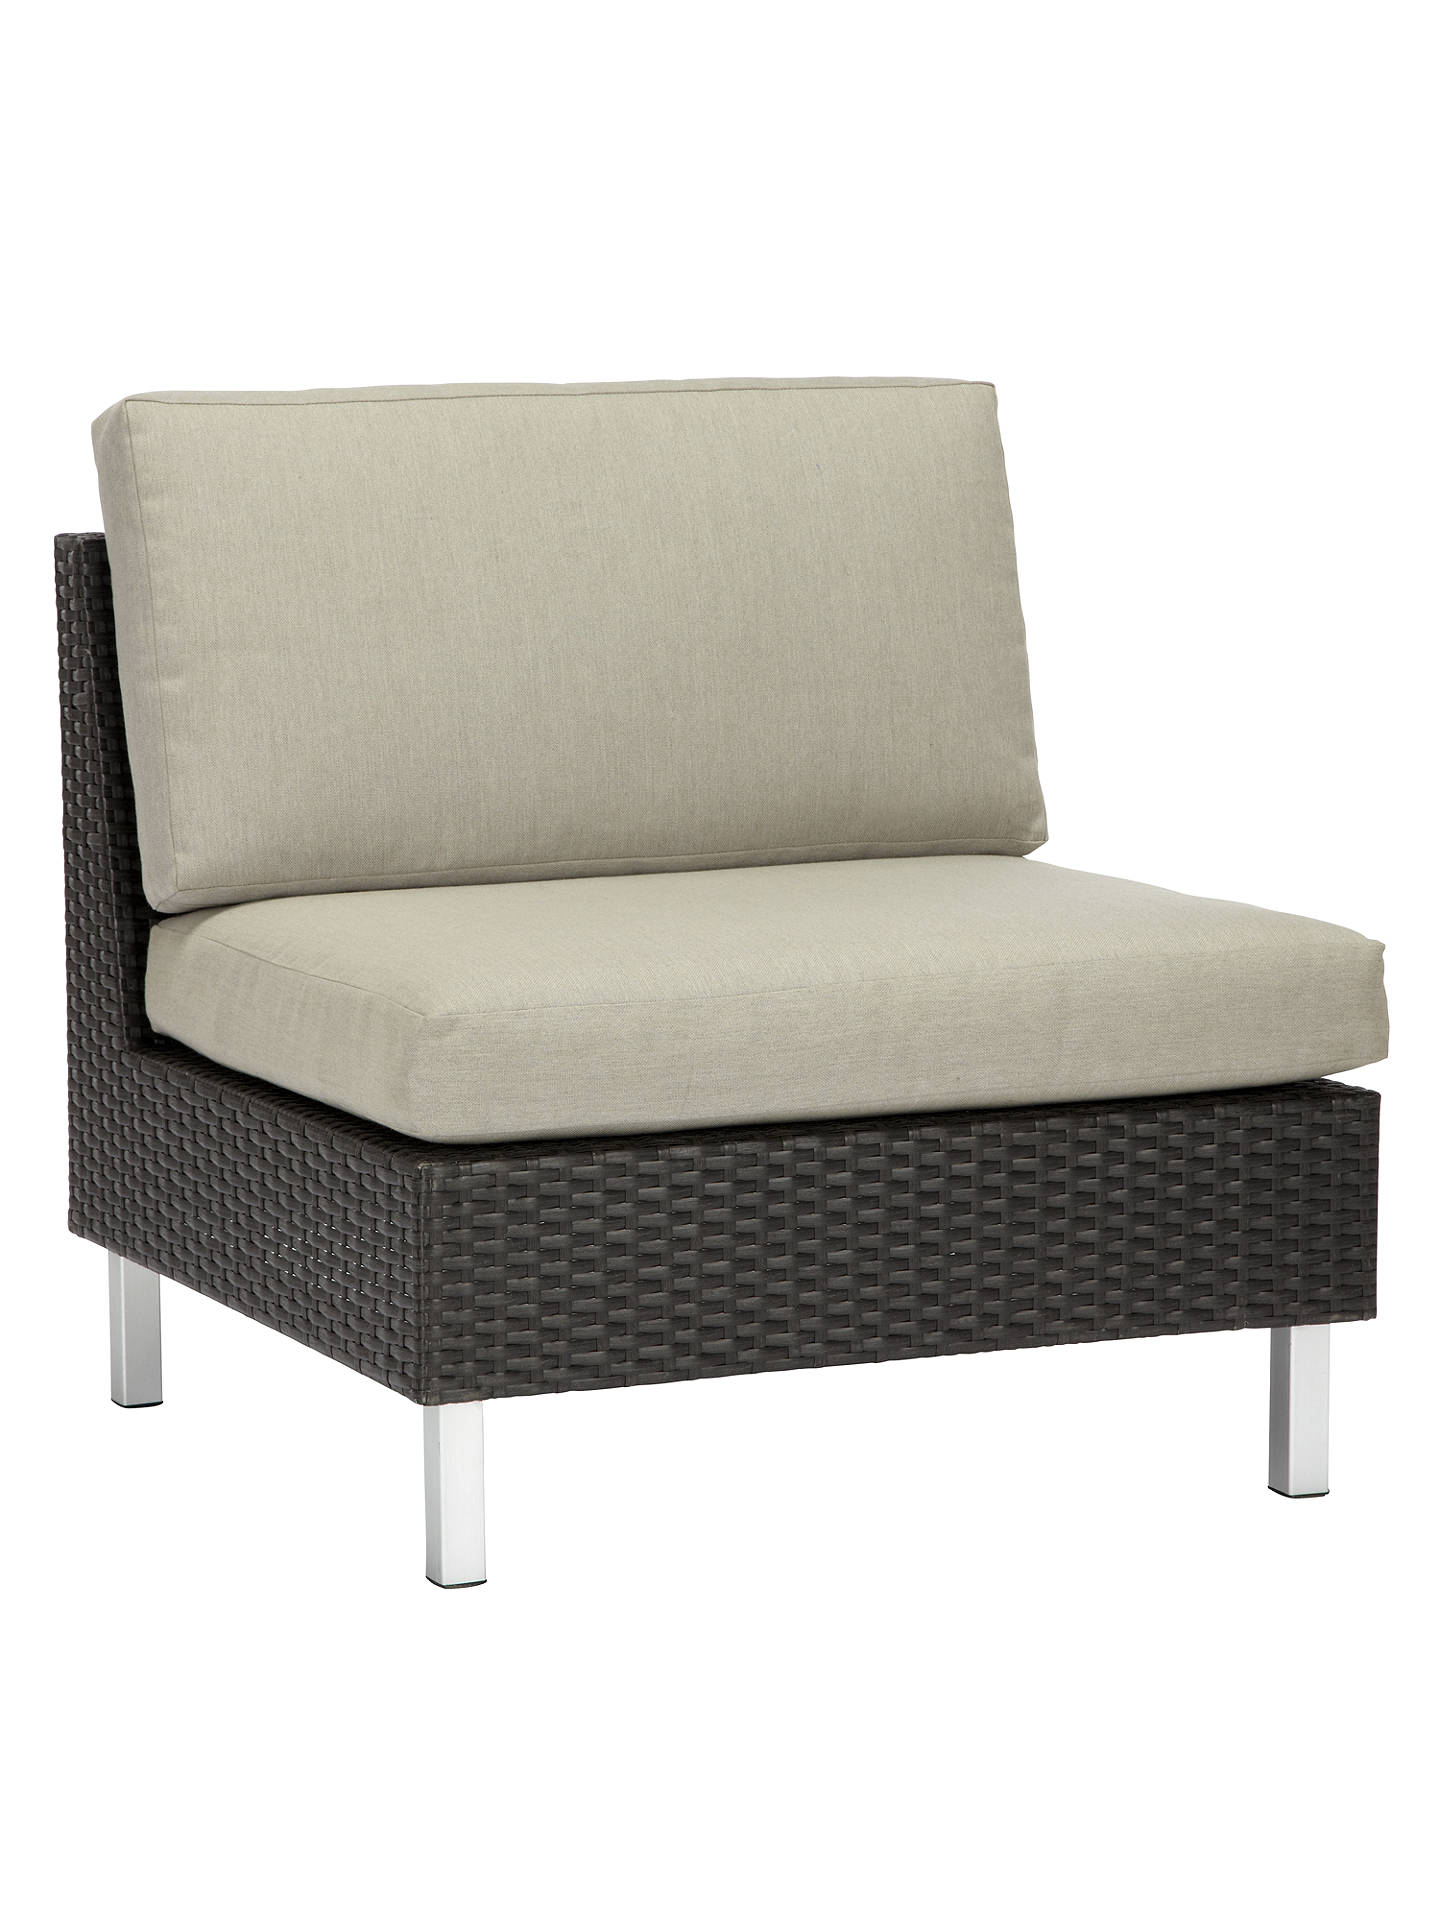 Buyjohn lewis partners madrid modular middle unit outdoor chair brown online at johnlewis